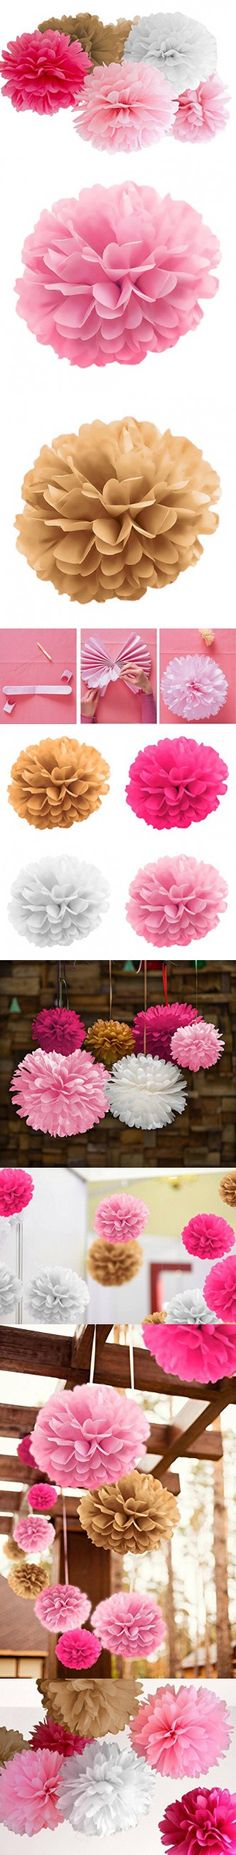 """Tissue Paper Pom Poms by Atmos - 20PCS - 8"""" 10"""" 14"""" - 4 Colors Dark & Light Pink, White, Gold, Hanging Flower Ball - Wedding, Birthday, Baby, Bridal Shower, Room decor & Party Decoration"""